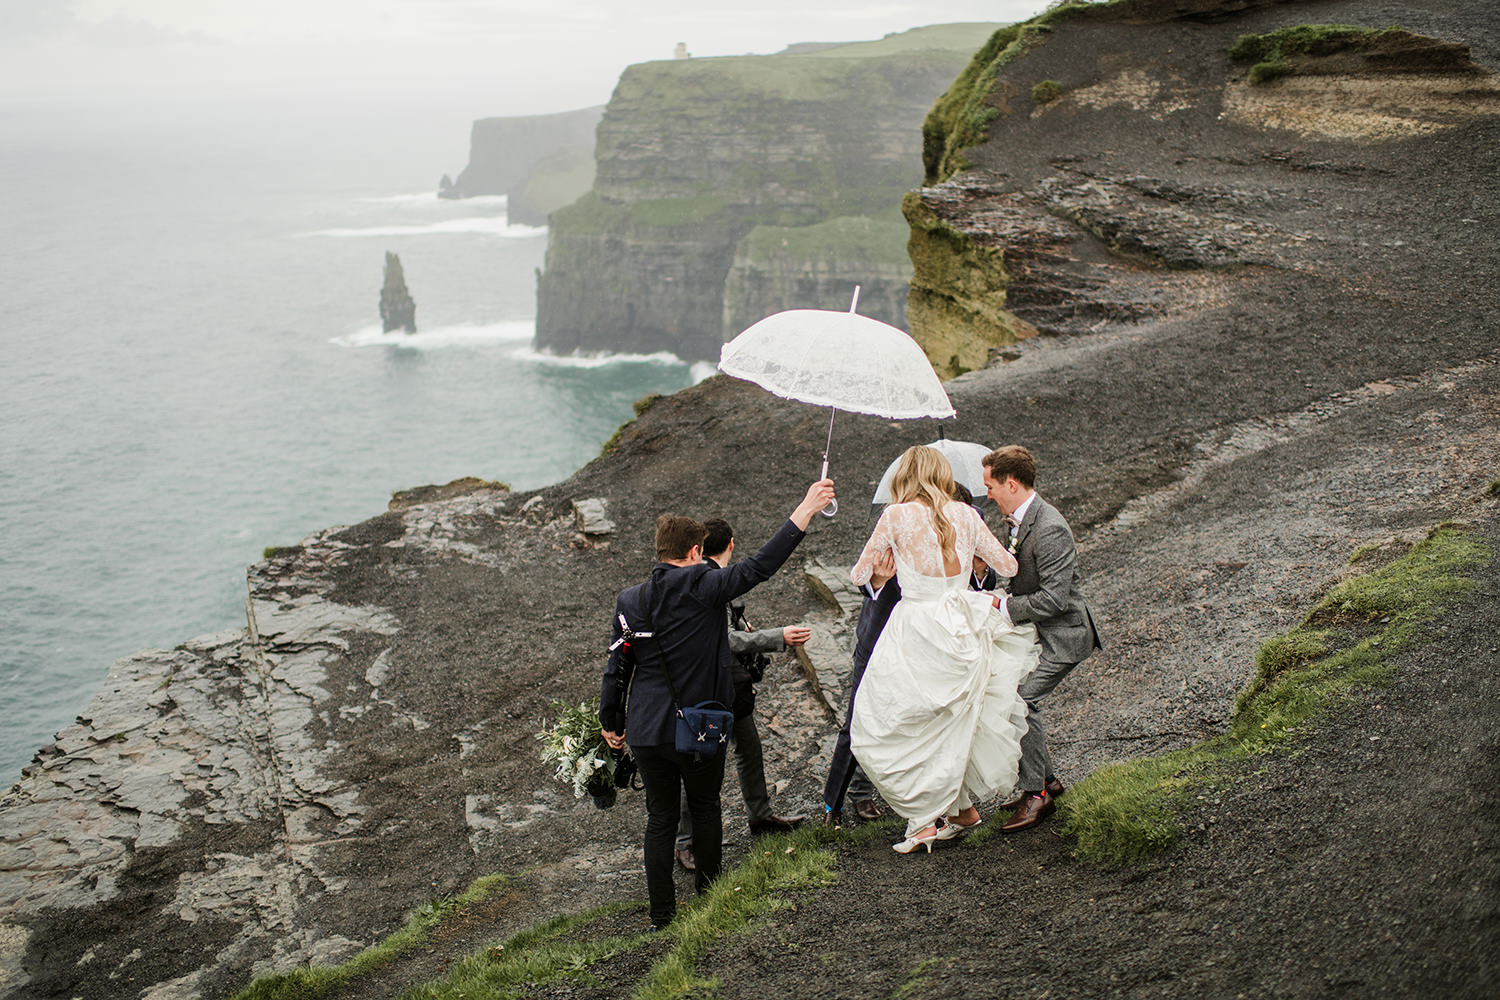 wedding at cliffs of moher bride and groom walking carefuly at the edge of cliffs